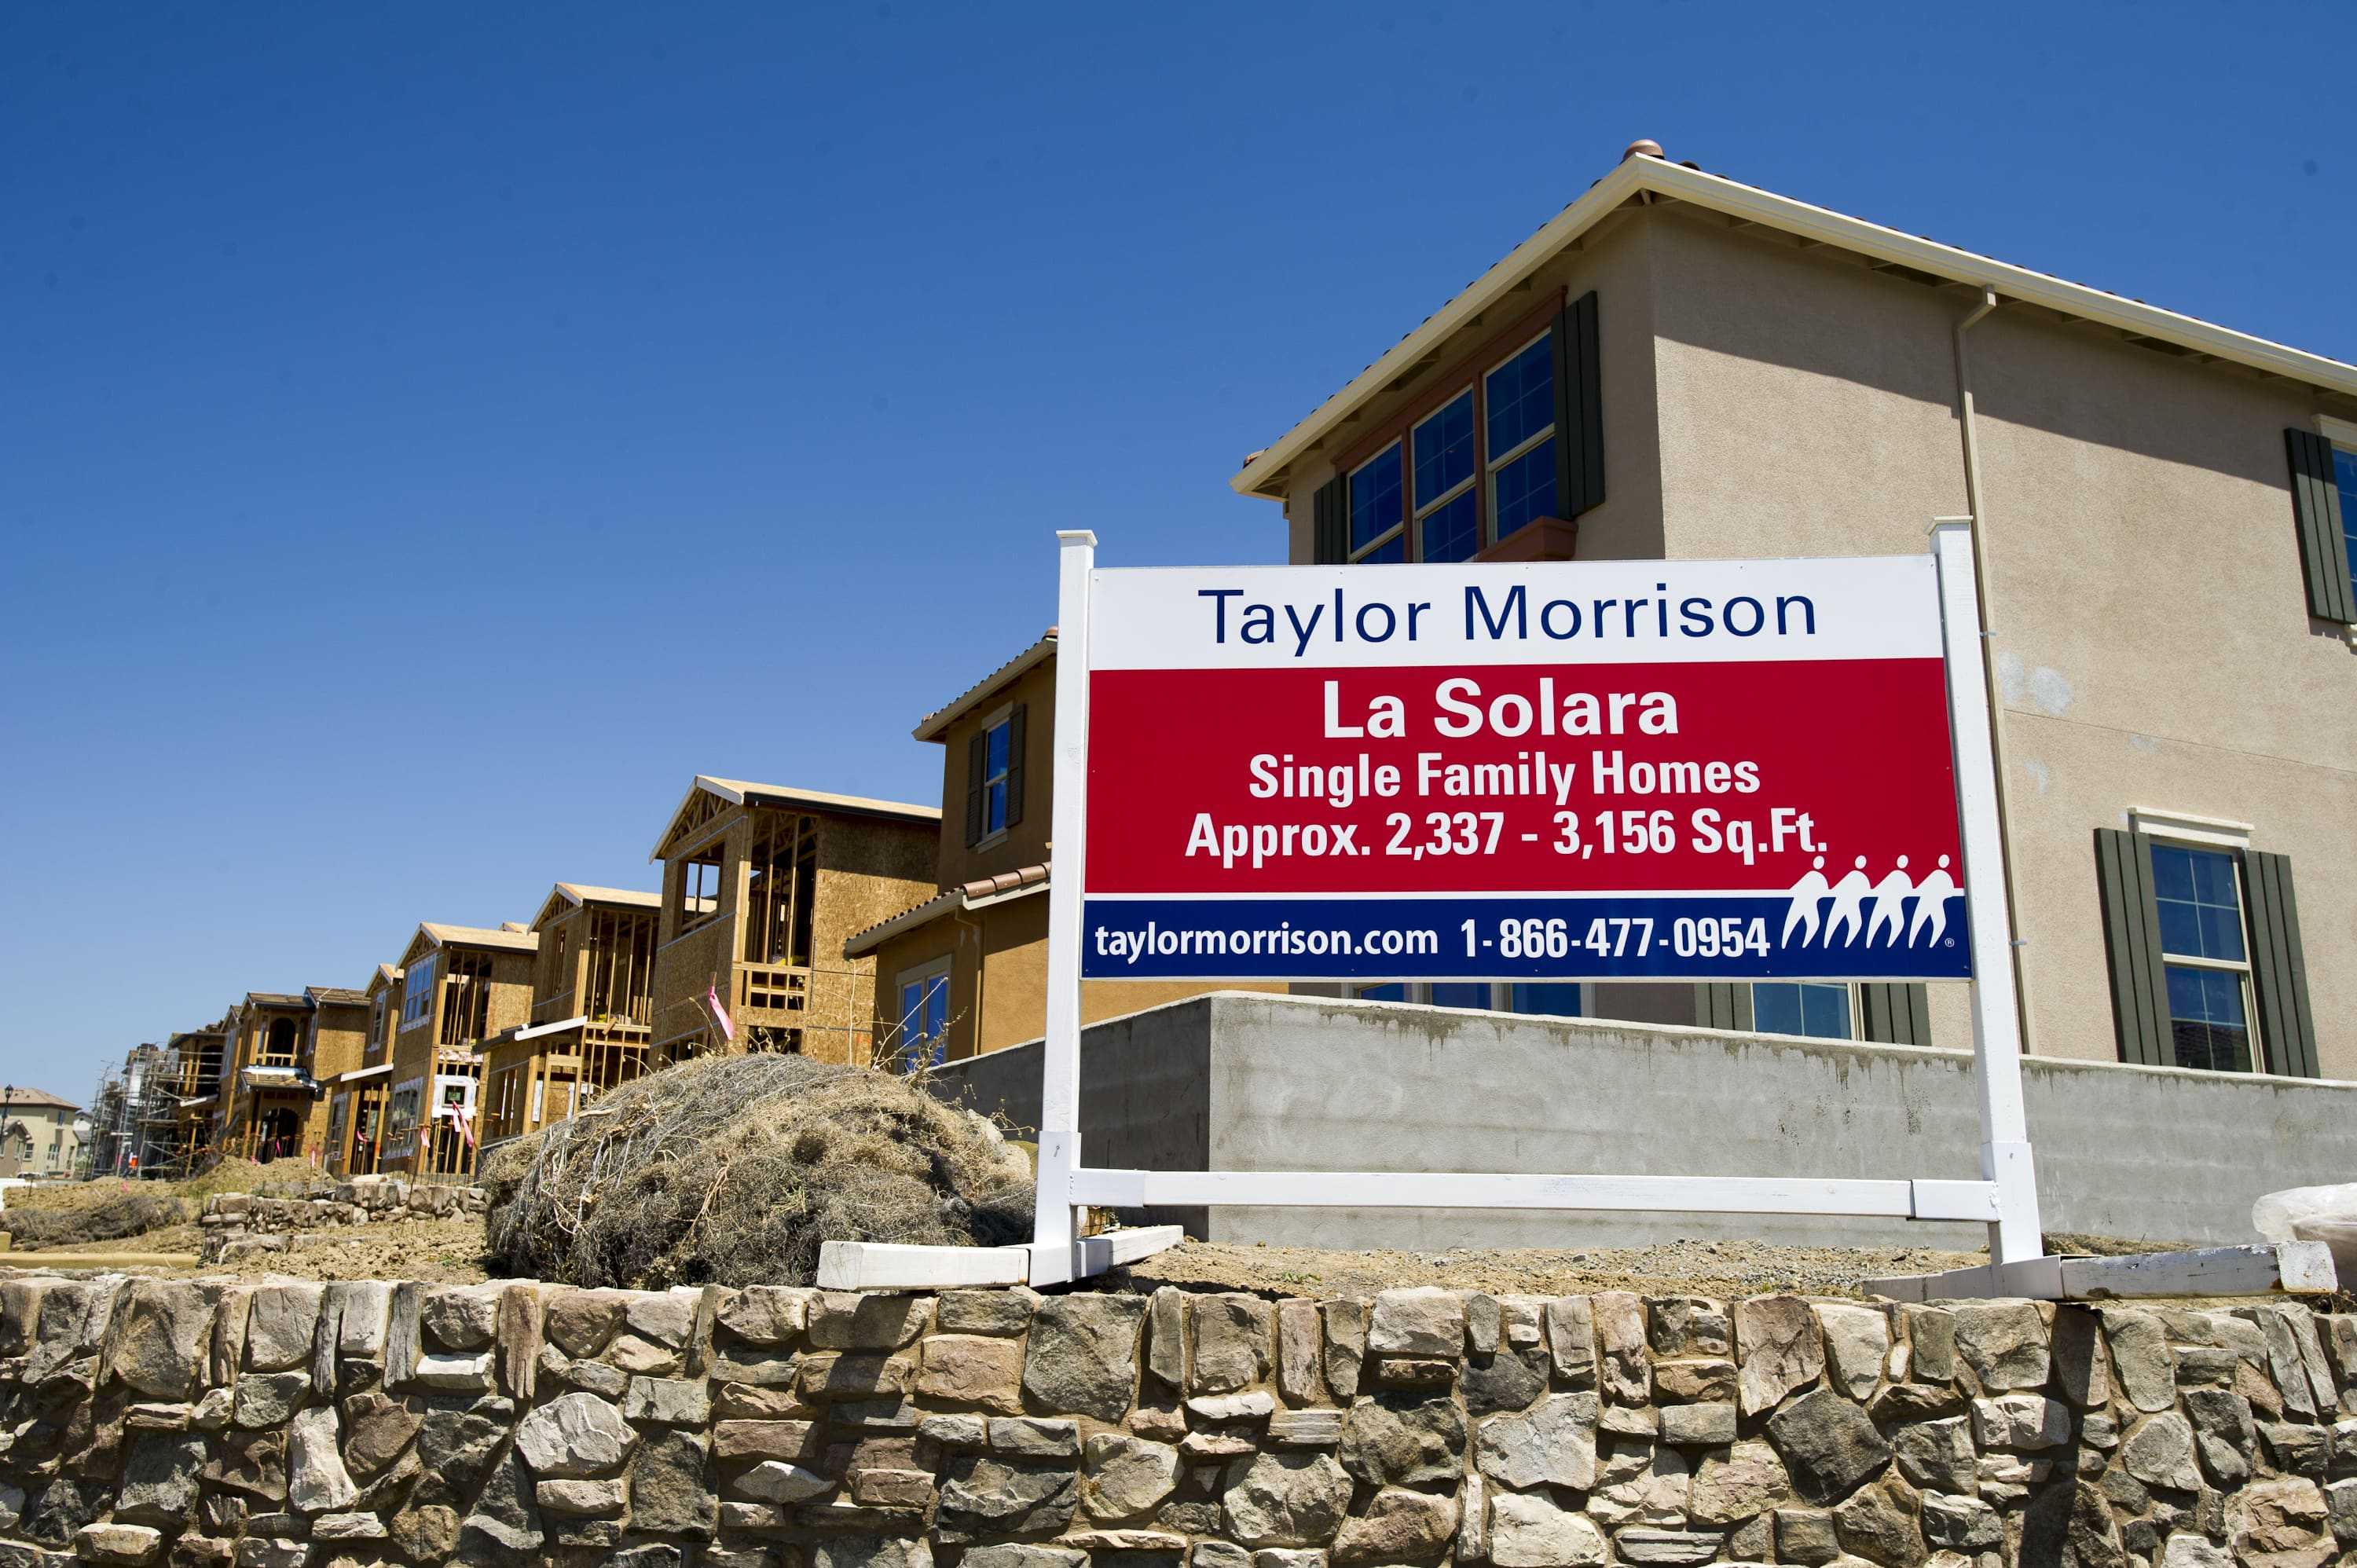 Homebuilder Taylor Morrison reports record June sales